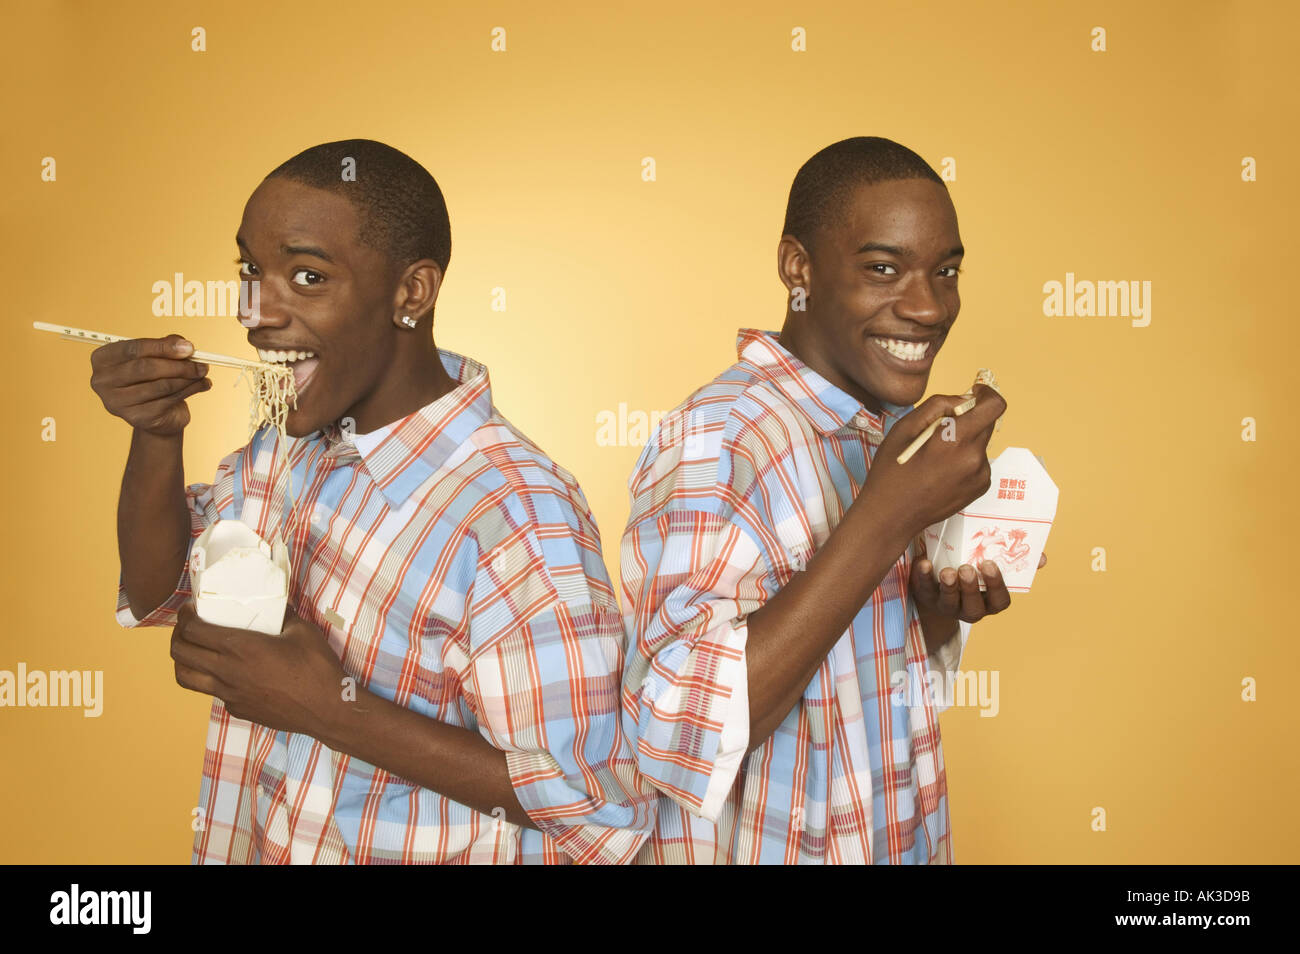 Twin teenage african american boys eating noodles from cartons